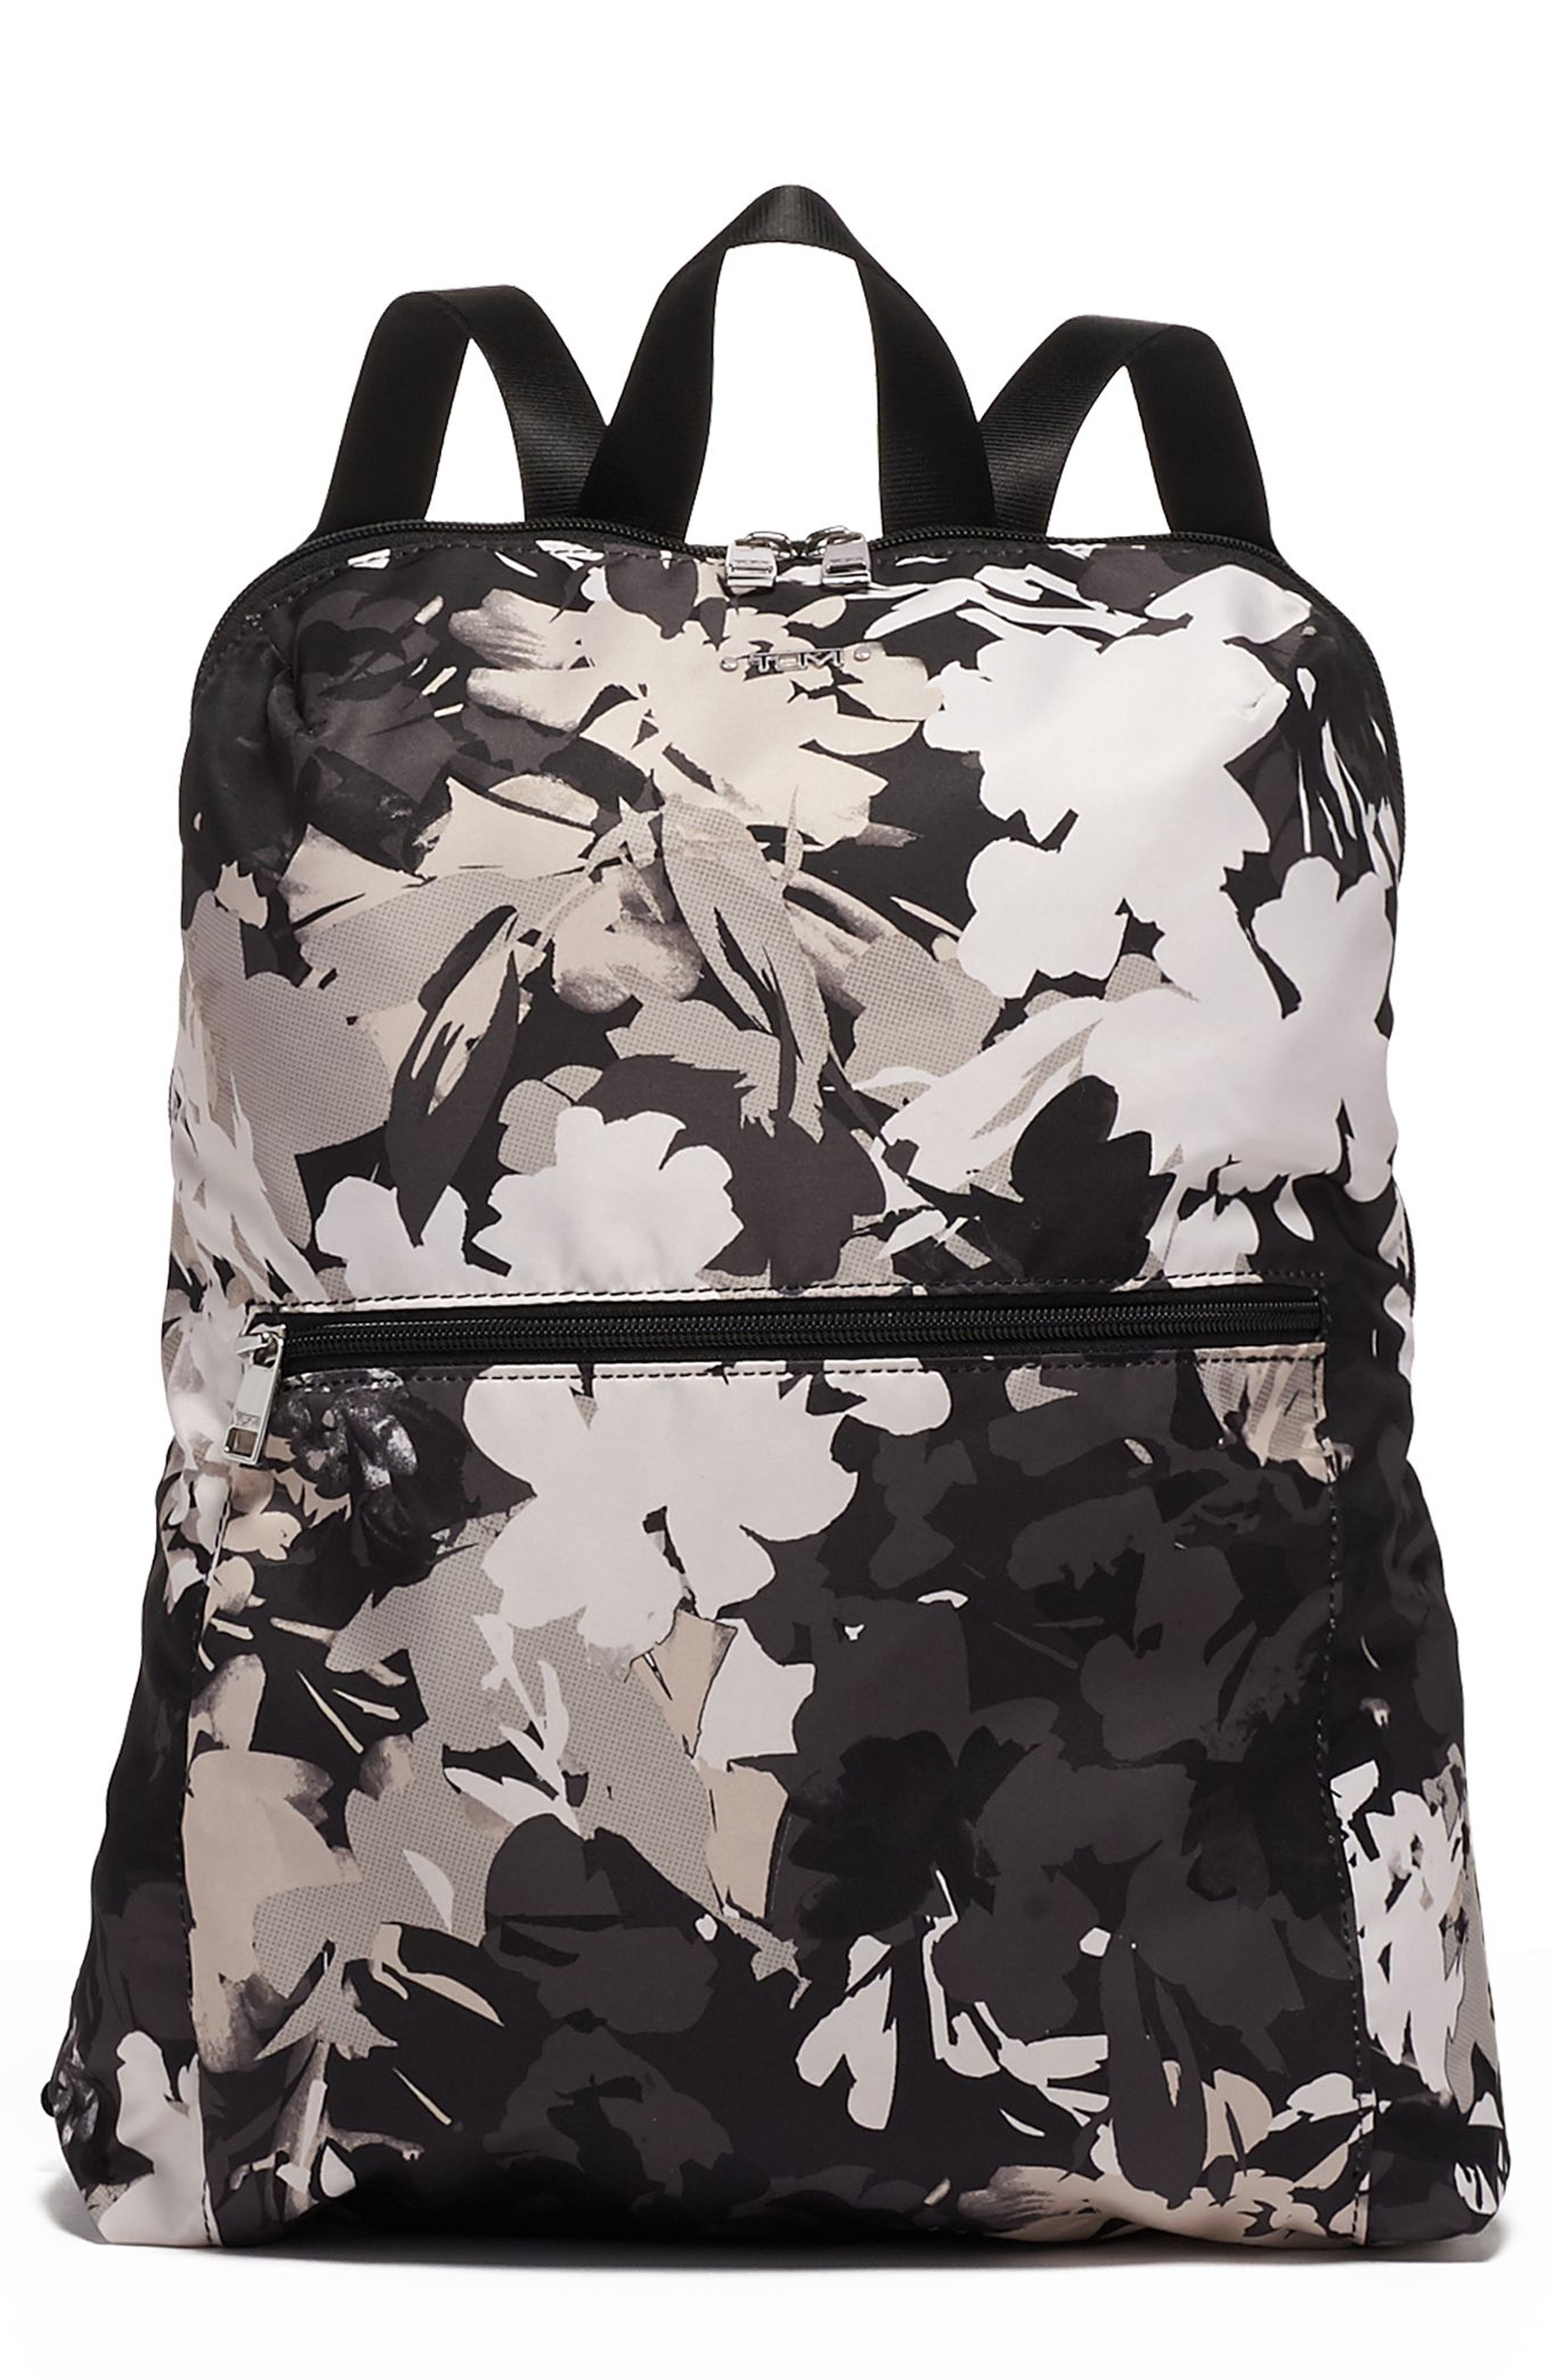 8d80515e20 Tumi Voyageur - Just In Case Nylon Travel Backpack - Black In African Floral